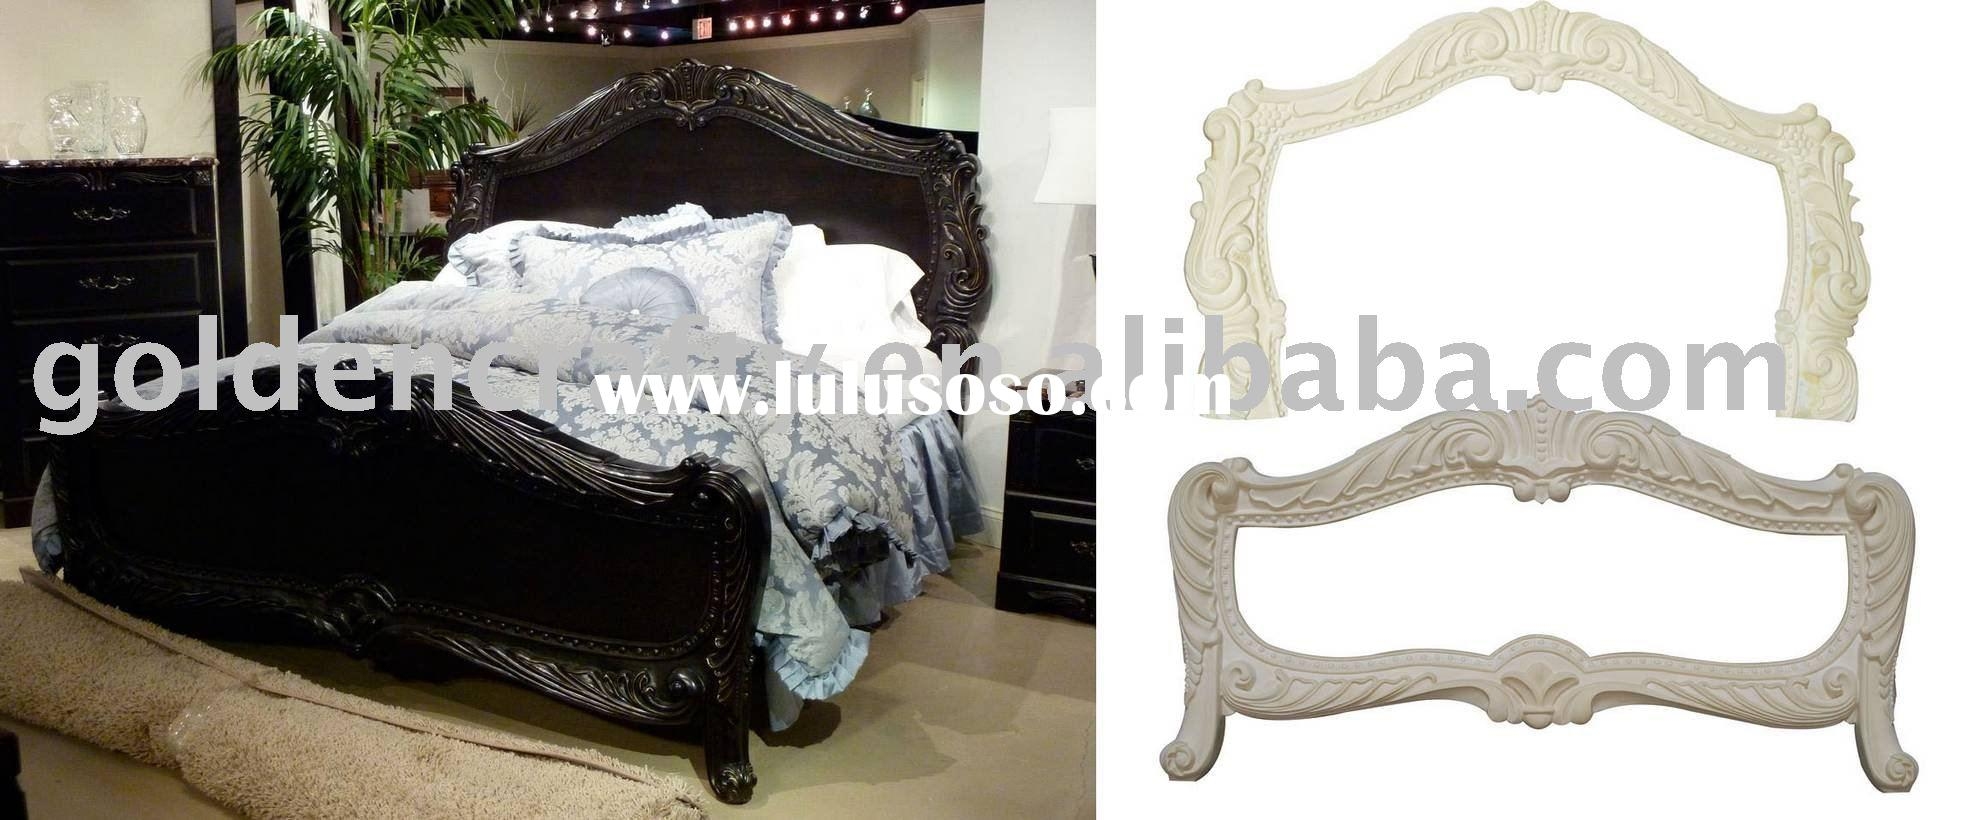 lycksele bed parts lycksele bed parts manufacturers in page 1. Black Bedroom Furniture Sets. Home Design Ideas